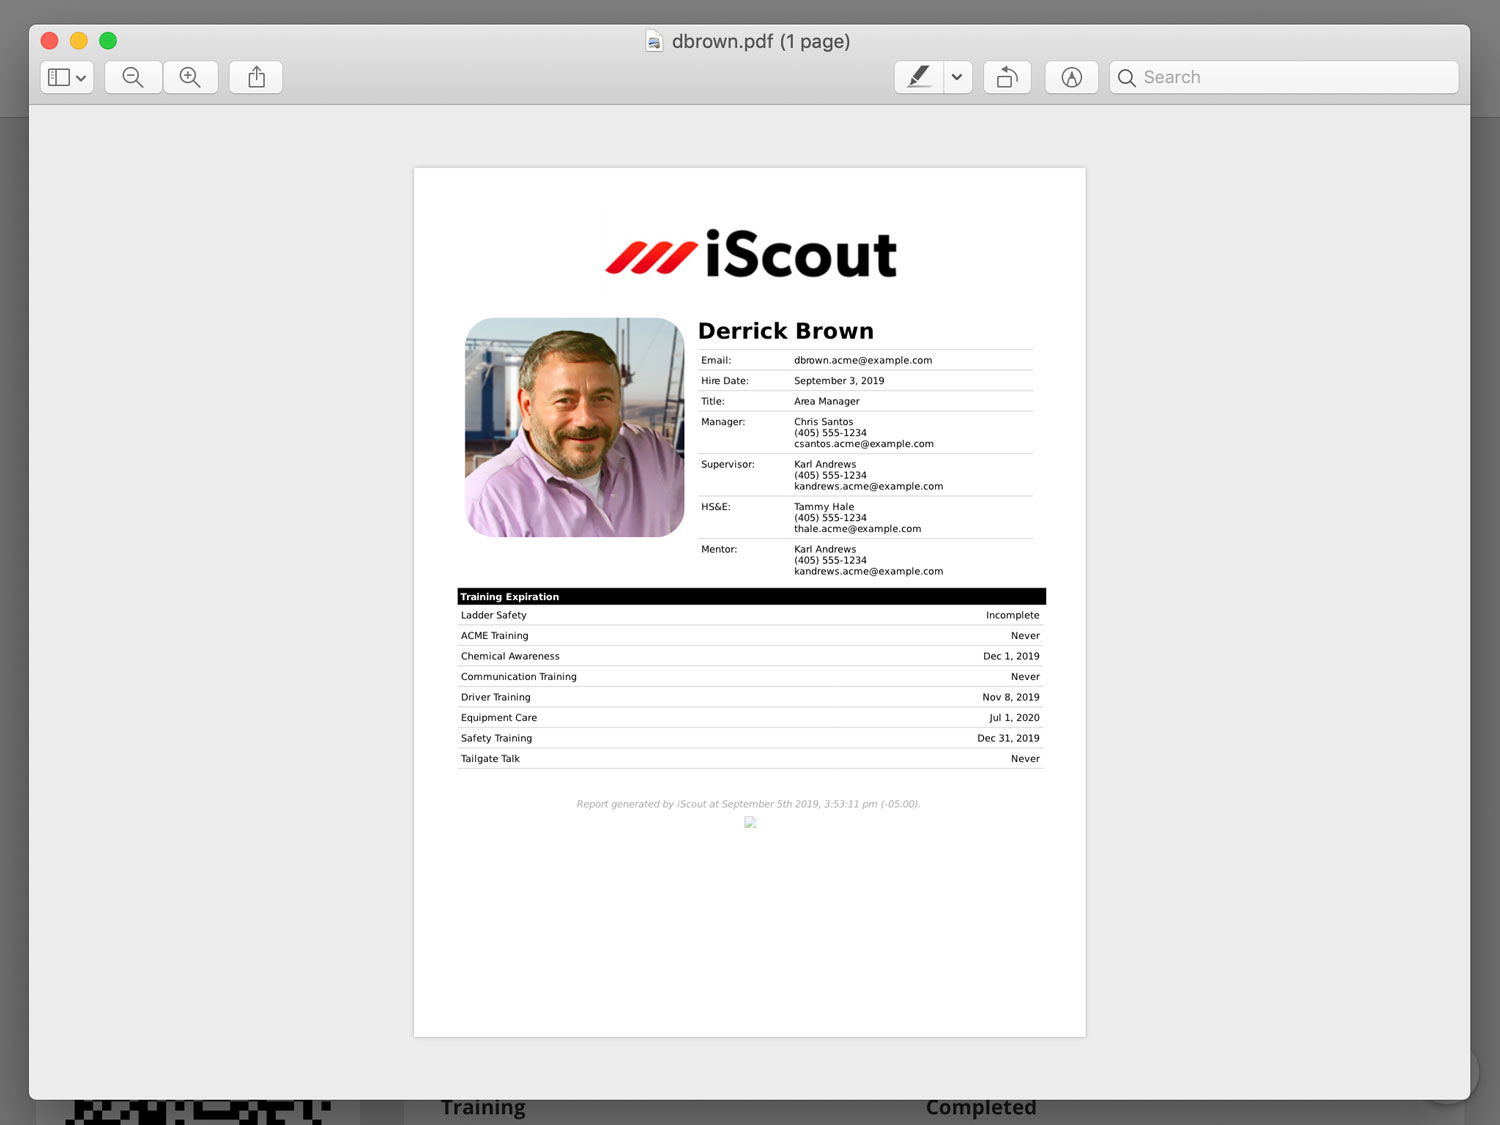 Employee Profile PDF